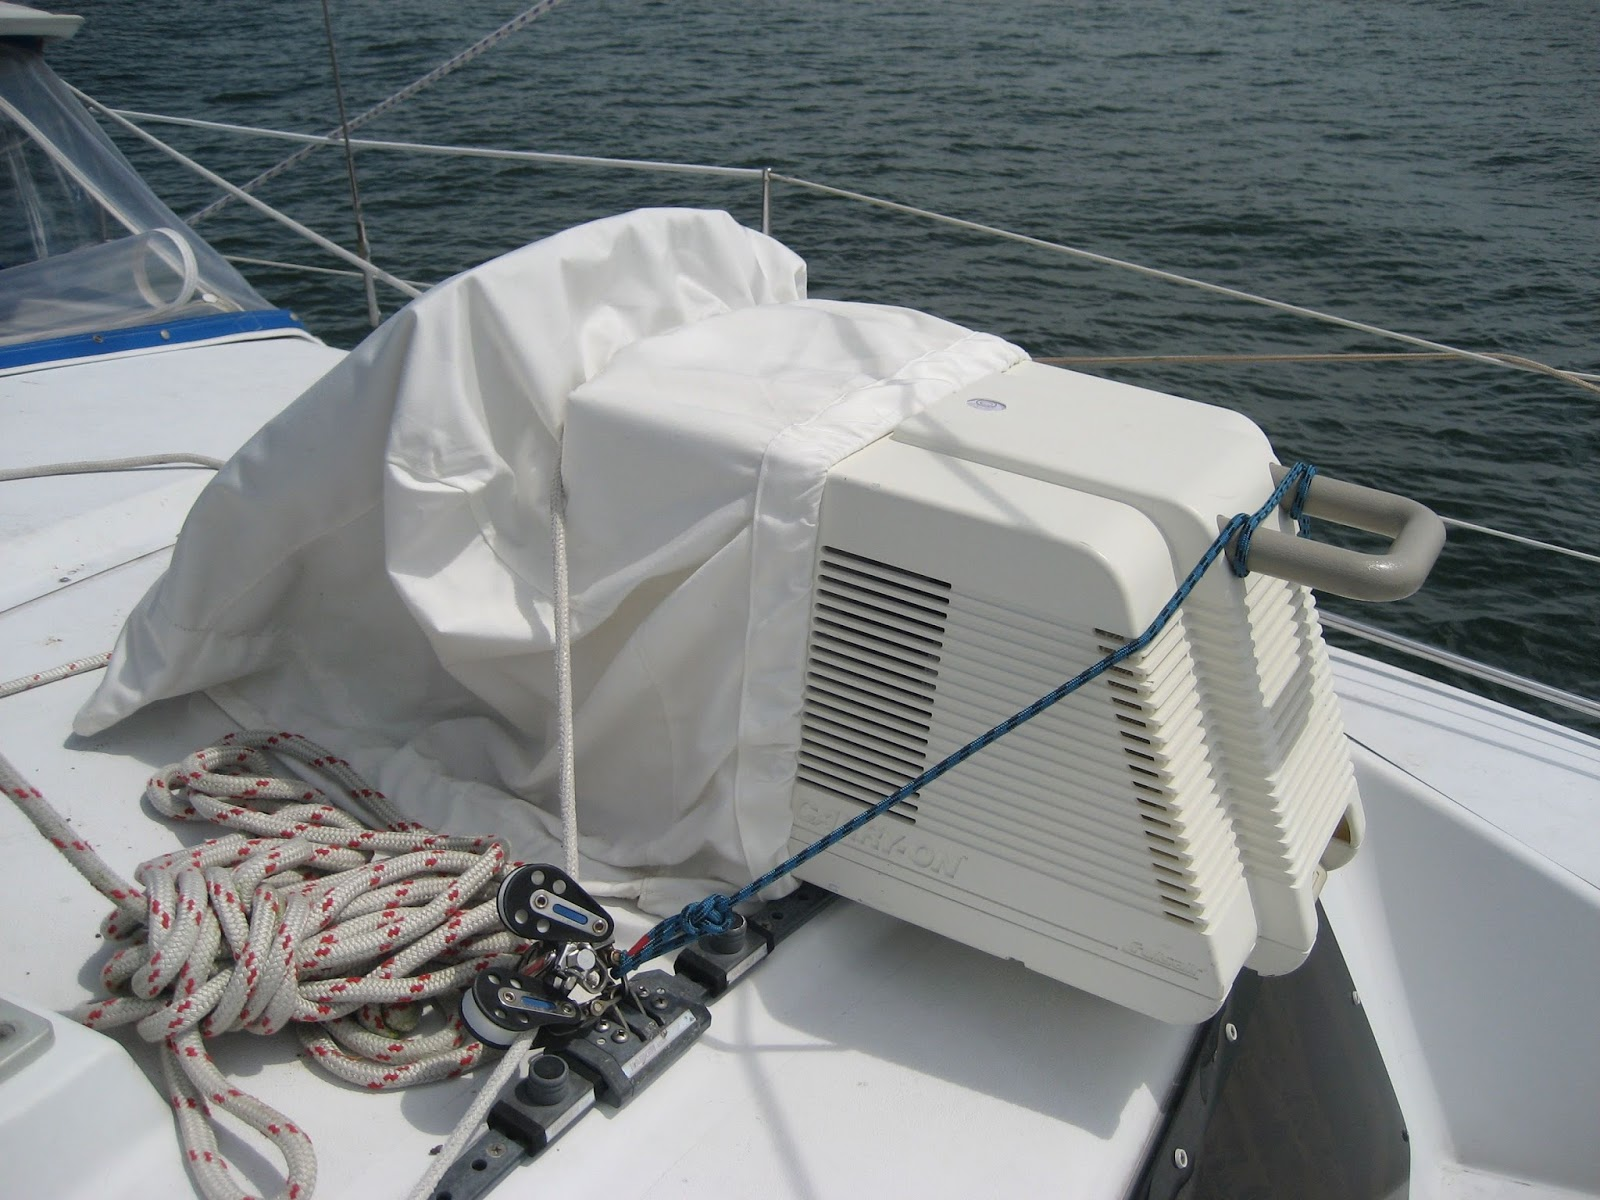 SOLD] Portable Cruisair Air Conditioner Cruisers & Sailing Forums #3F515D